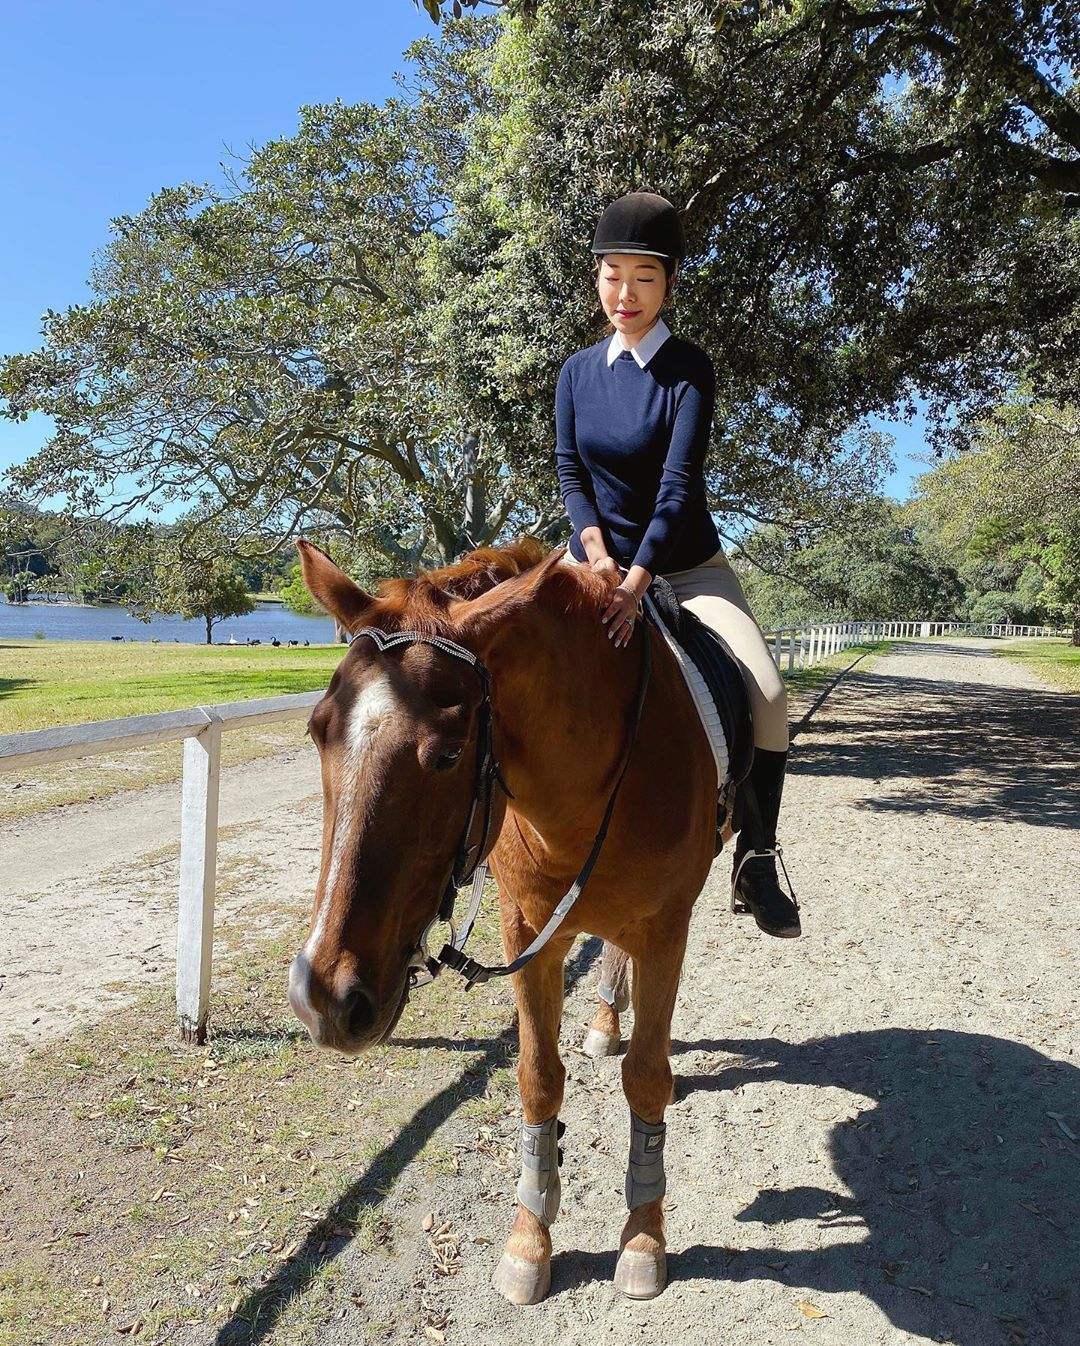 10 Best Tatlergrams: Feiping Chang Enjoys Horse Riding In Australia And More